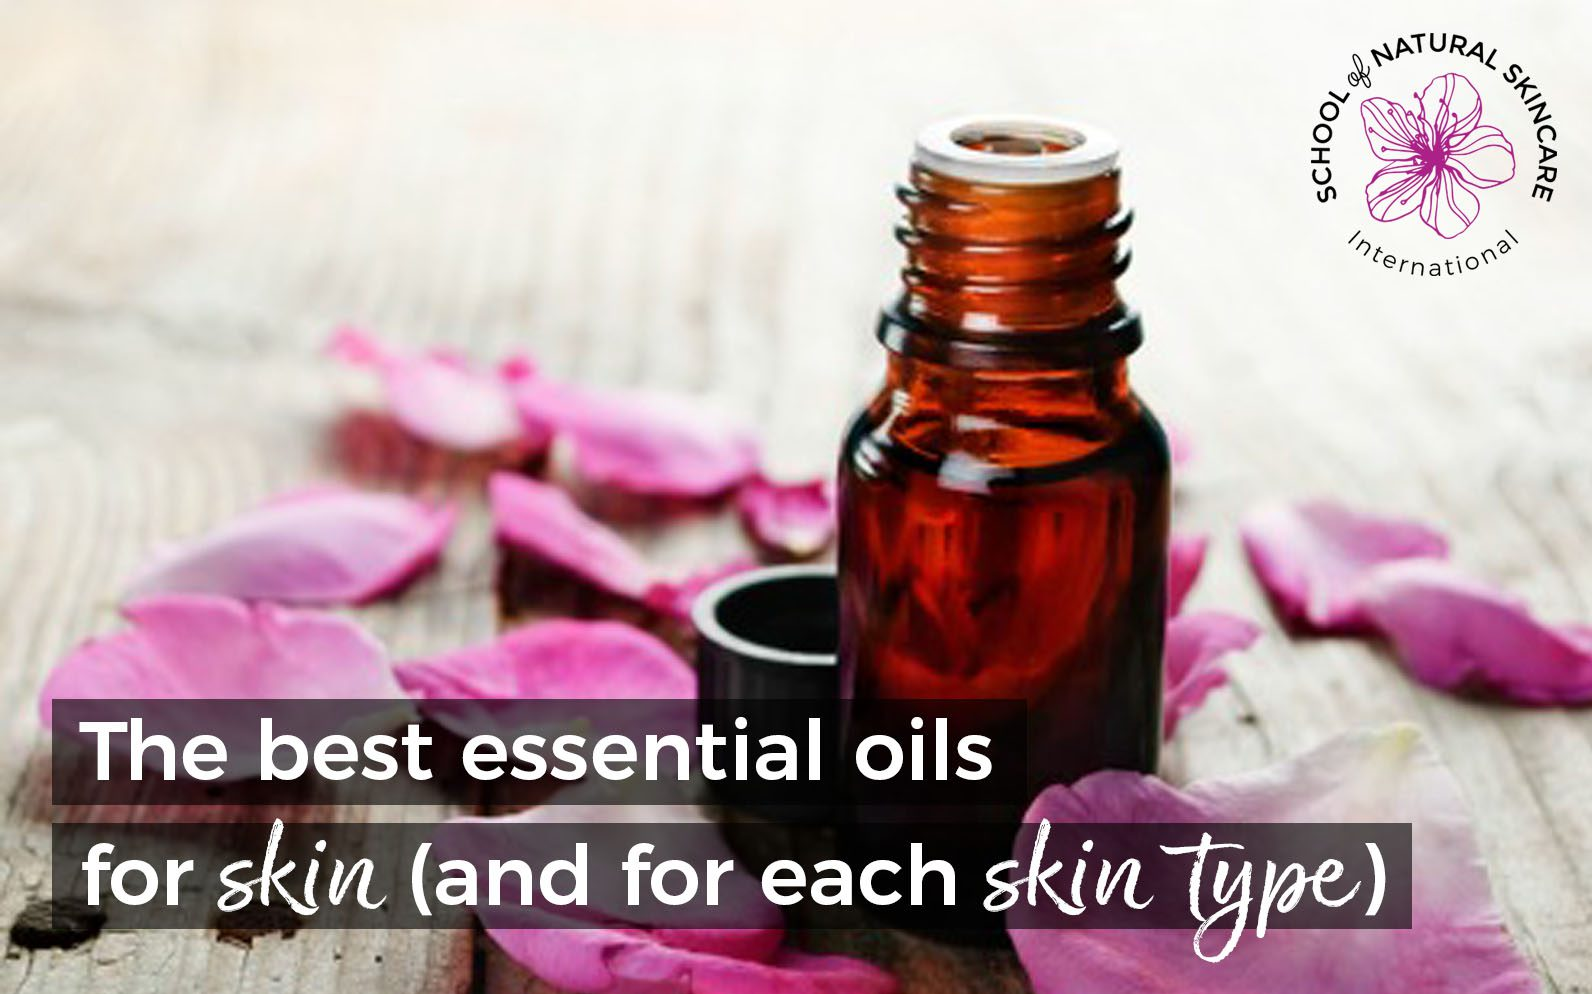 All Natural Skincare For Sensitive Skin The Best Essential Oils For Skin